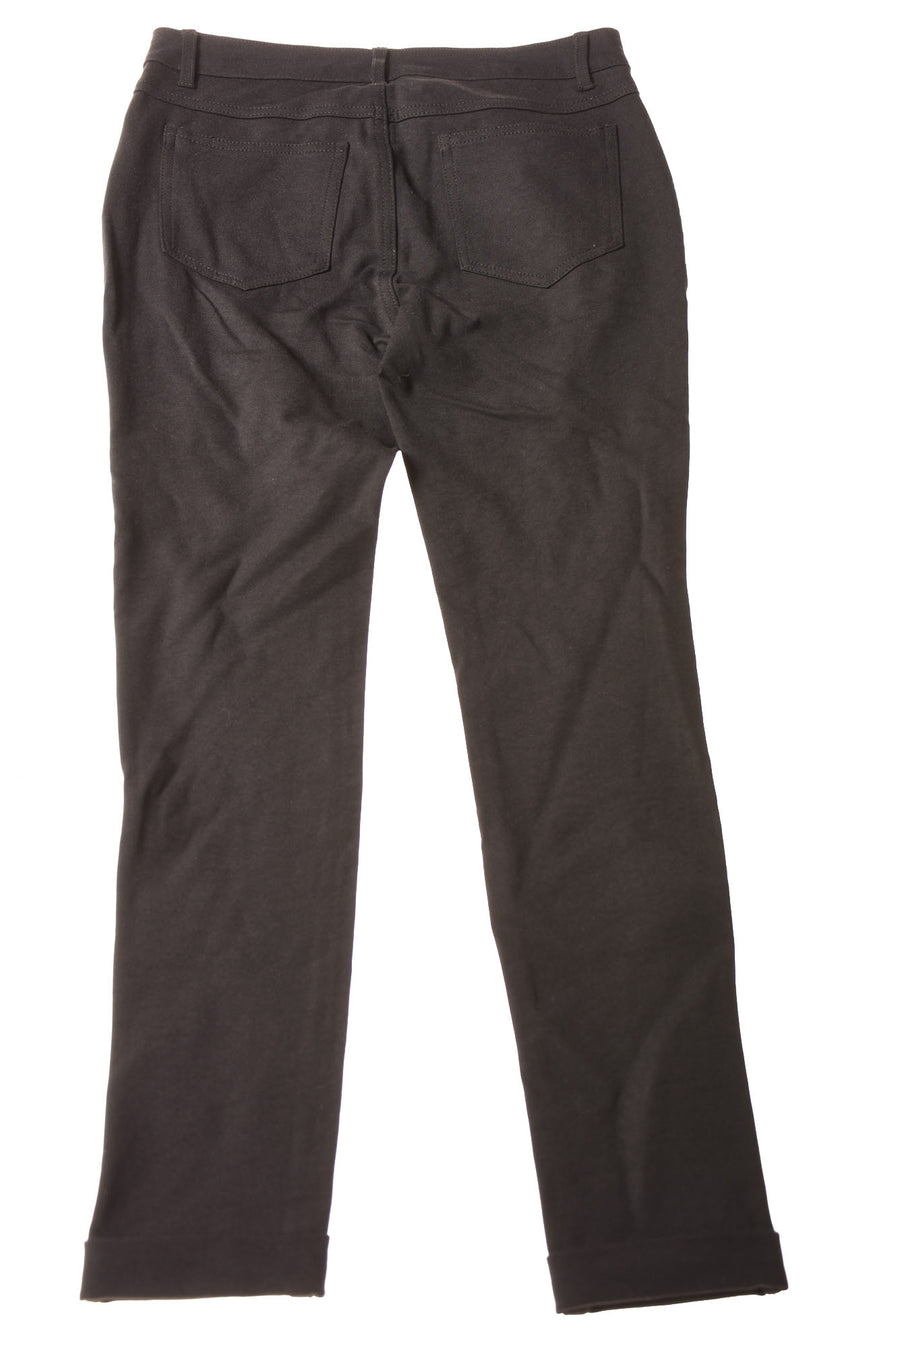 NEW 26 International Women's Jeans  Medium Black